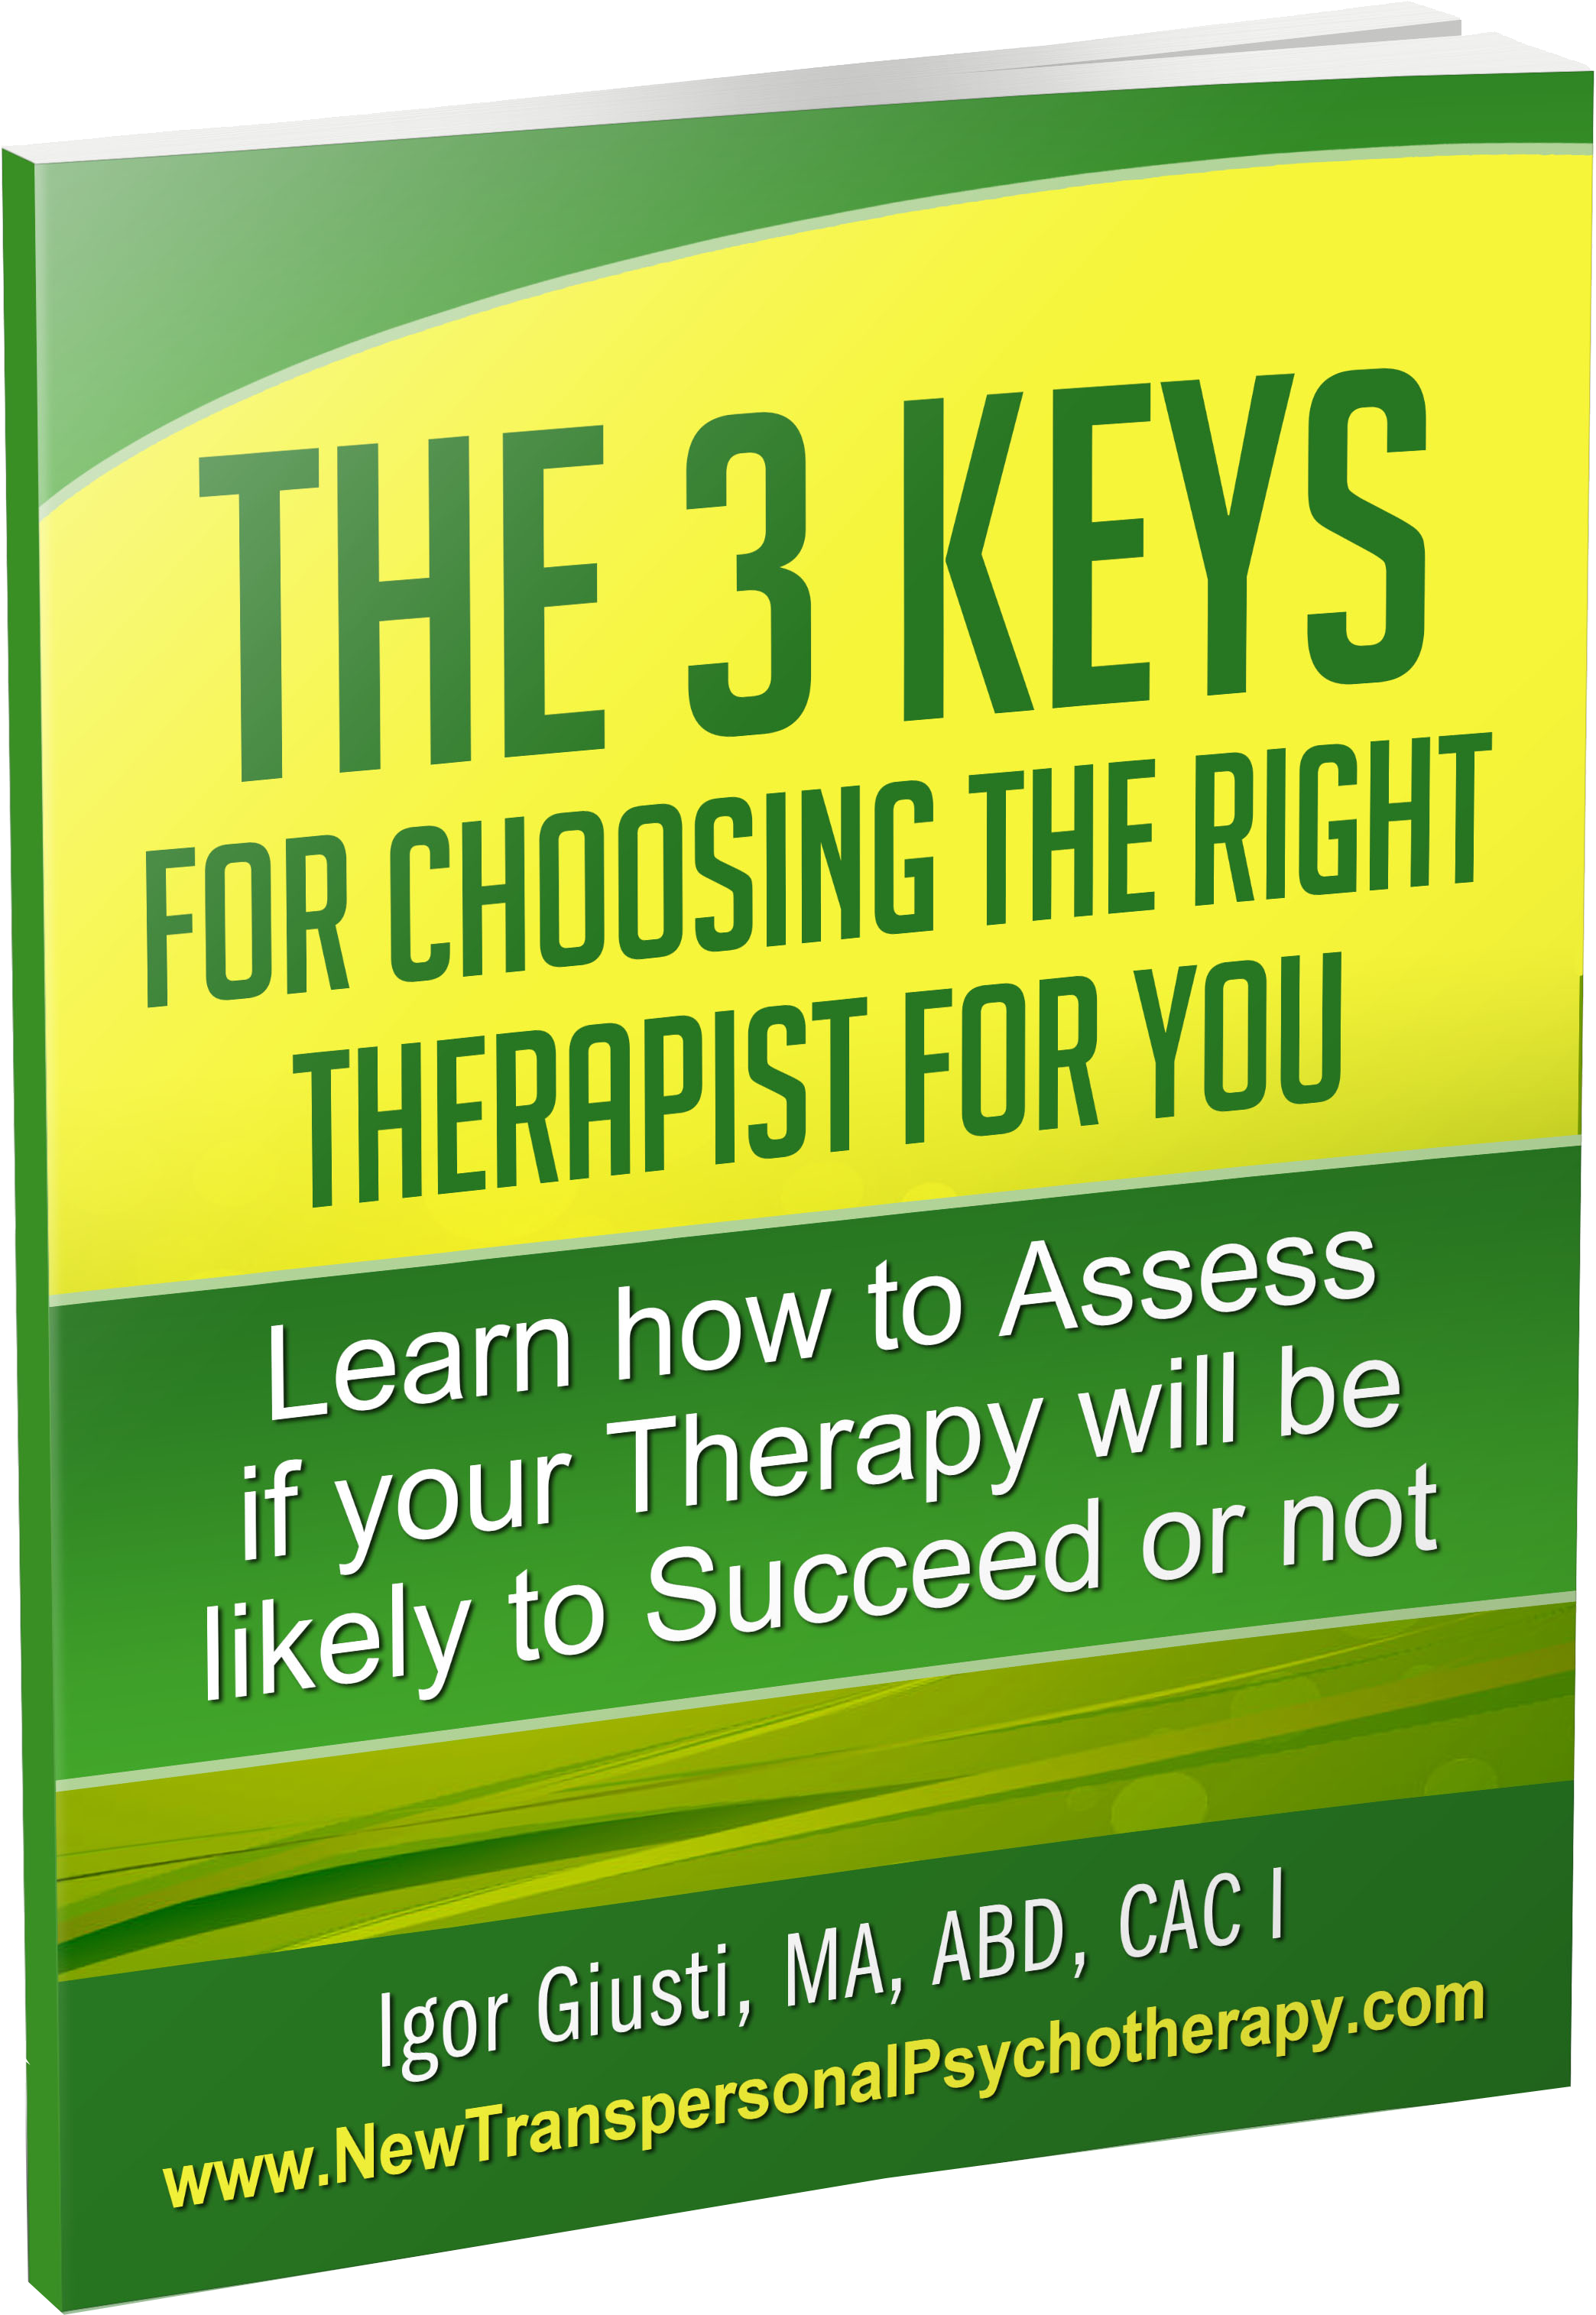 The 3 Keys for Choosing the Right Therapist for You